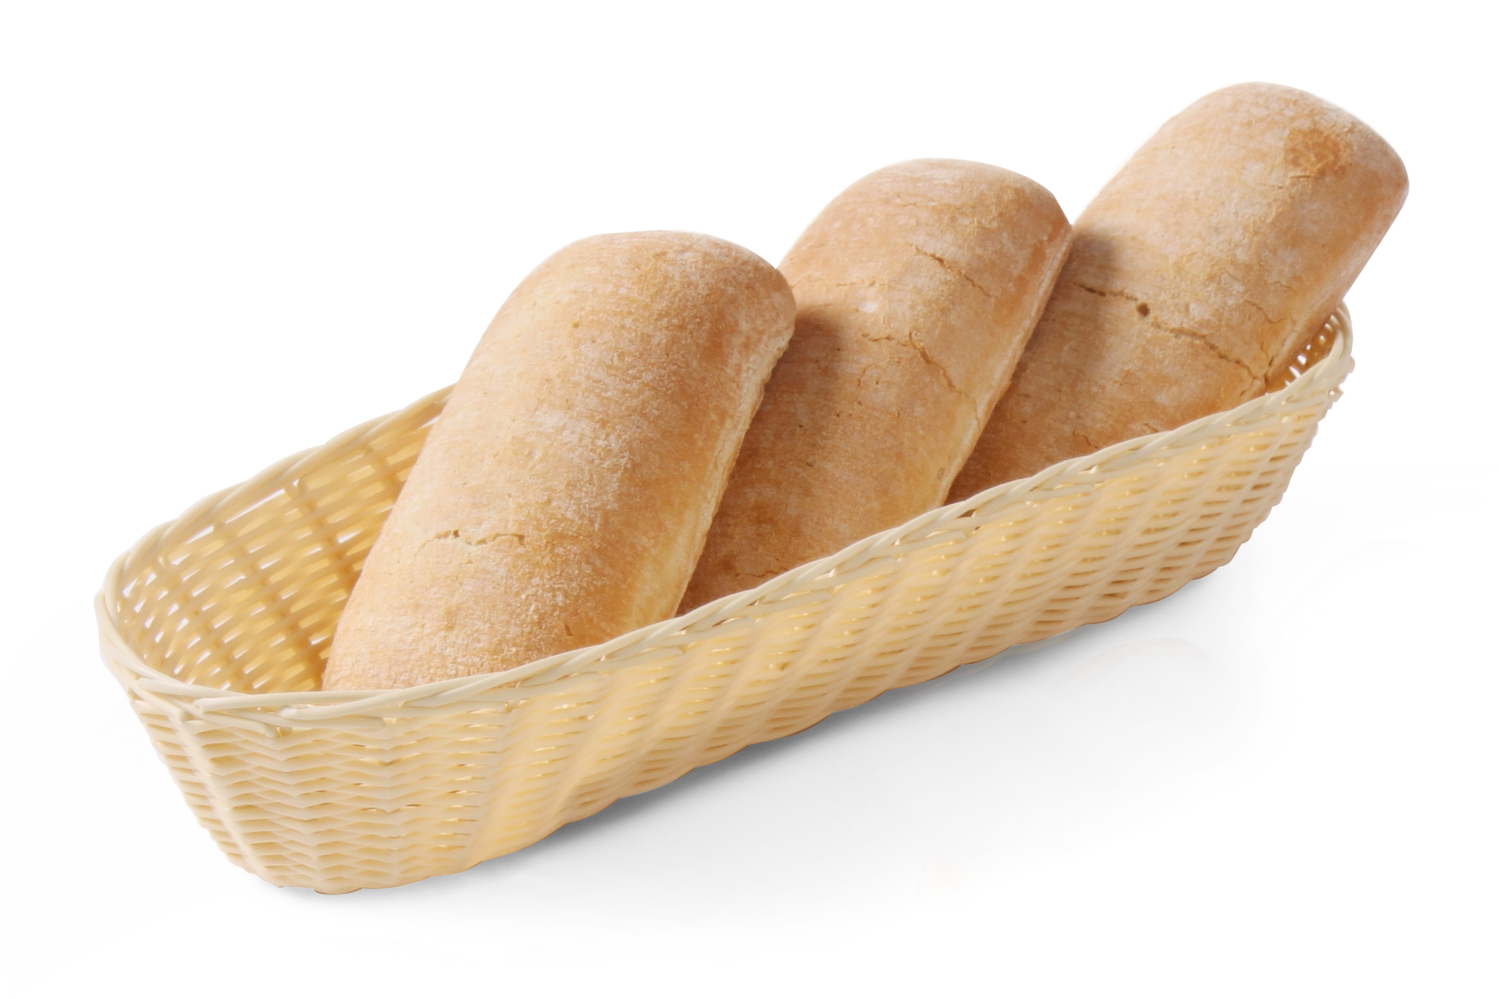 426906_with_bread.jpg